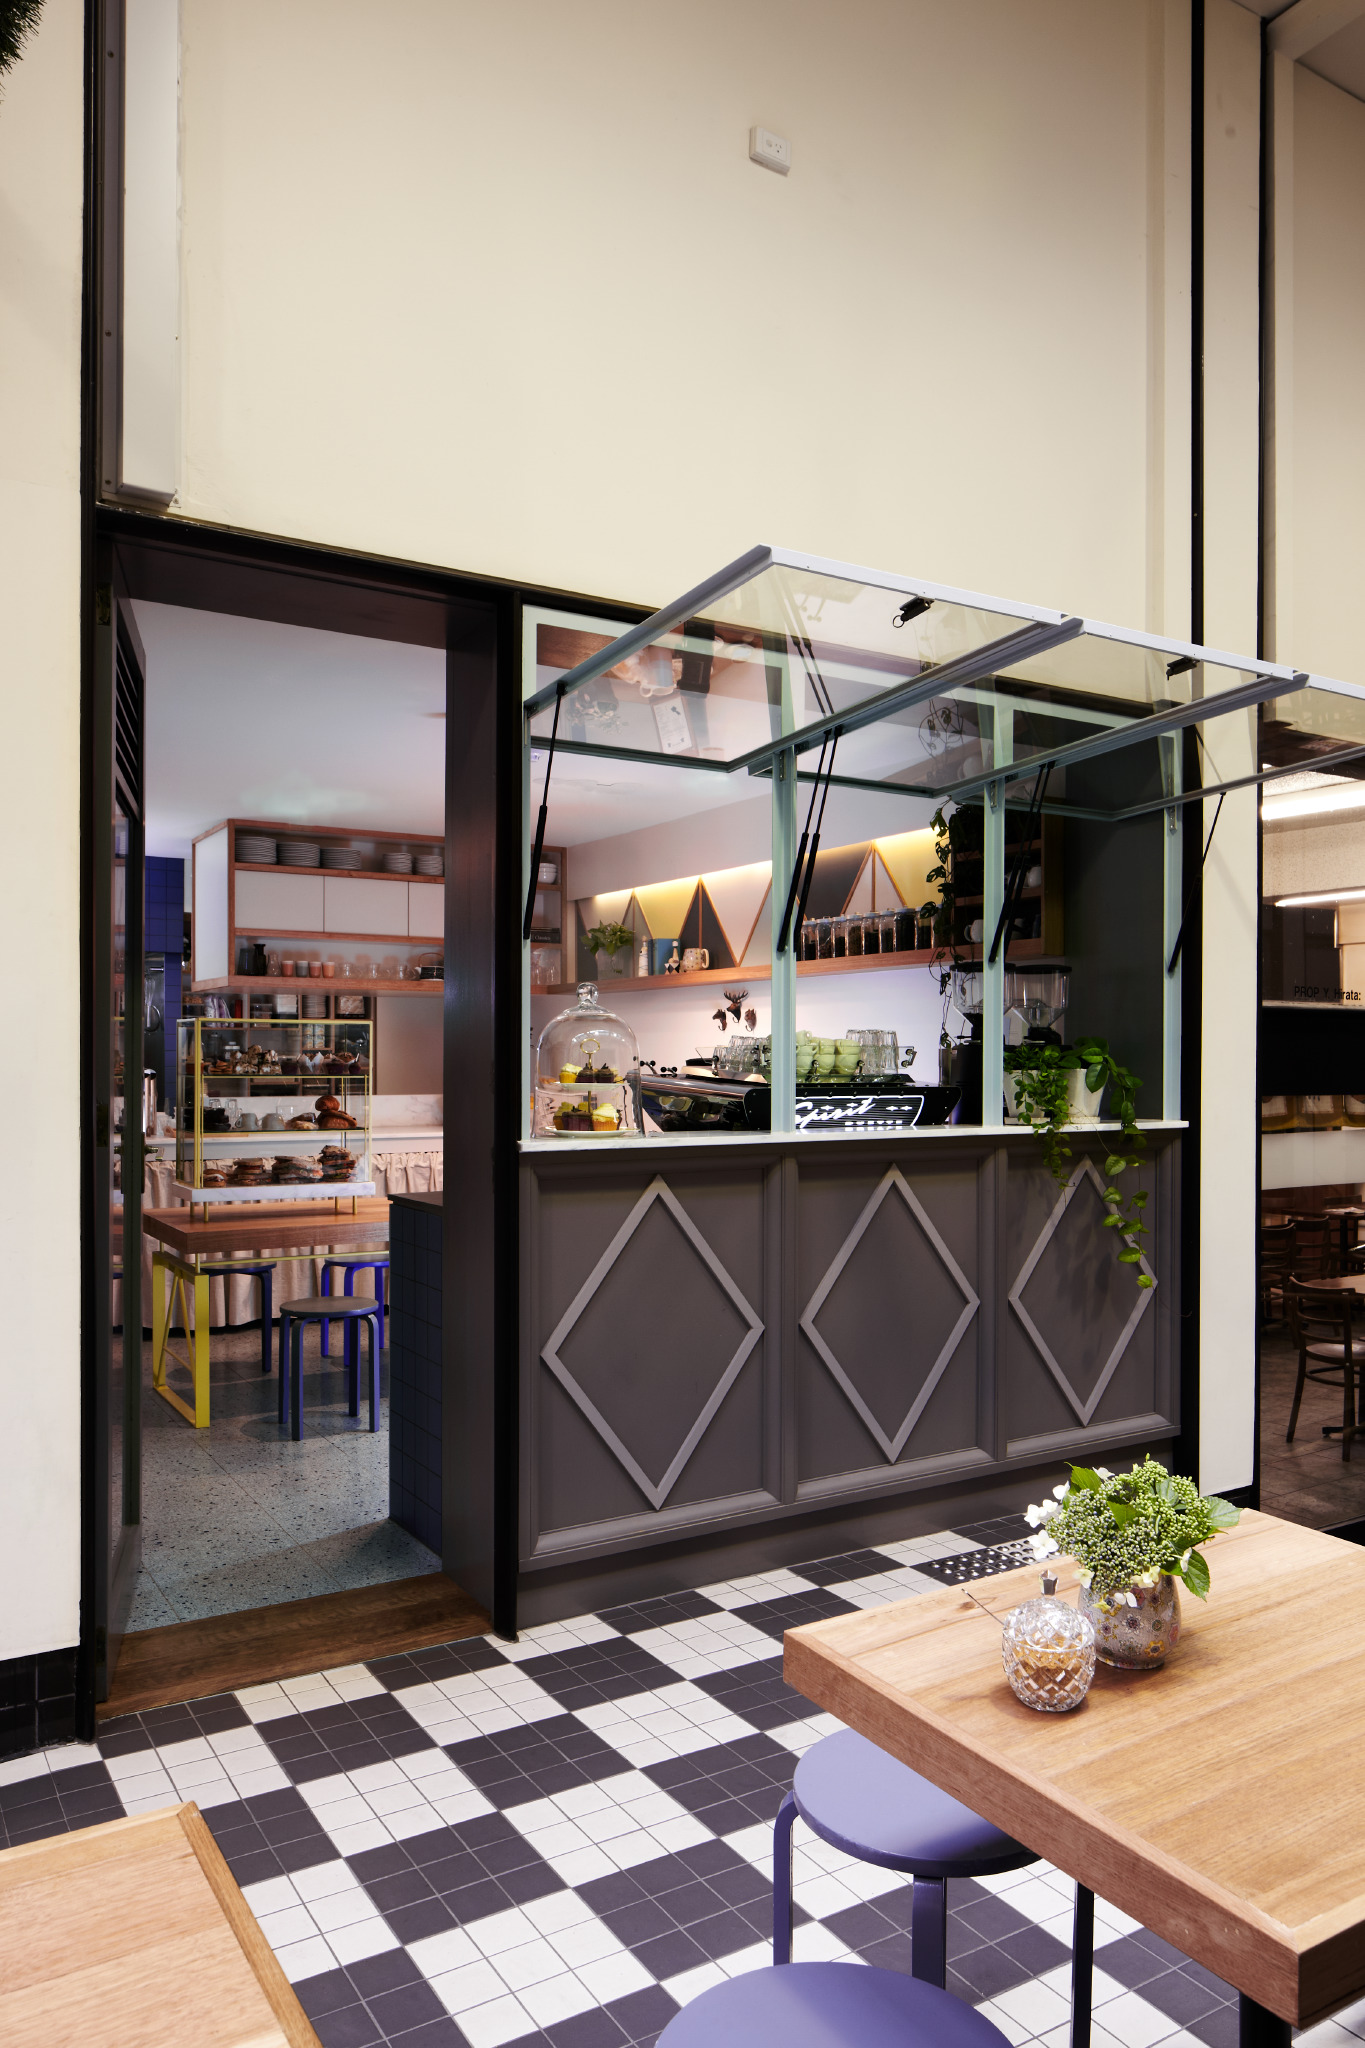 Alice Nivens - Interior Commercial Fit-out - Melbourne, VIC, Australia - Image 8